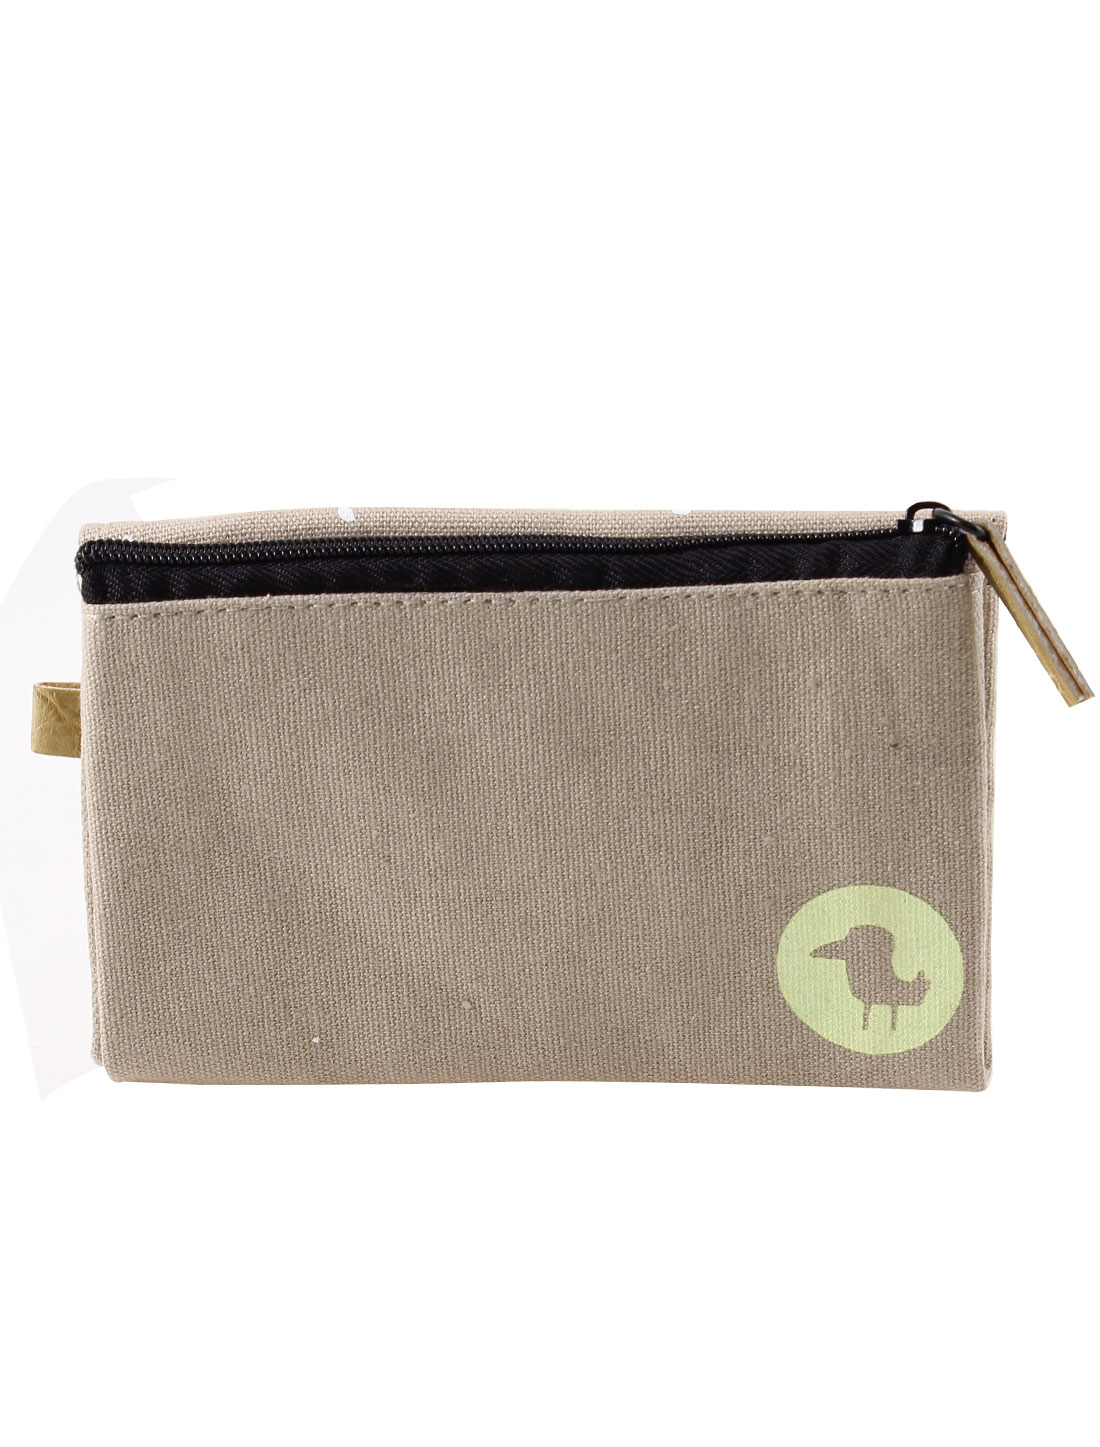 Zipper Closure Press Button Two Slots Cash Coin Money Key Credit Card Purse Bag Khaki for Ladies